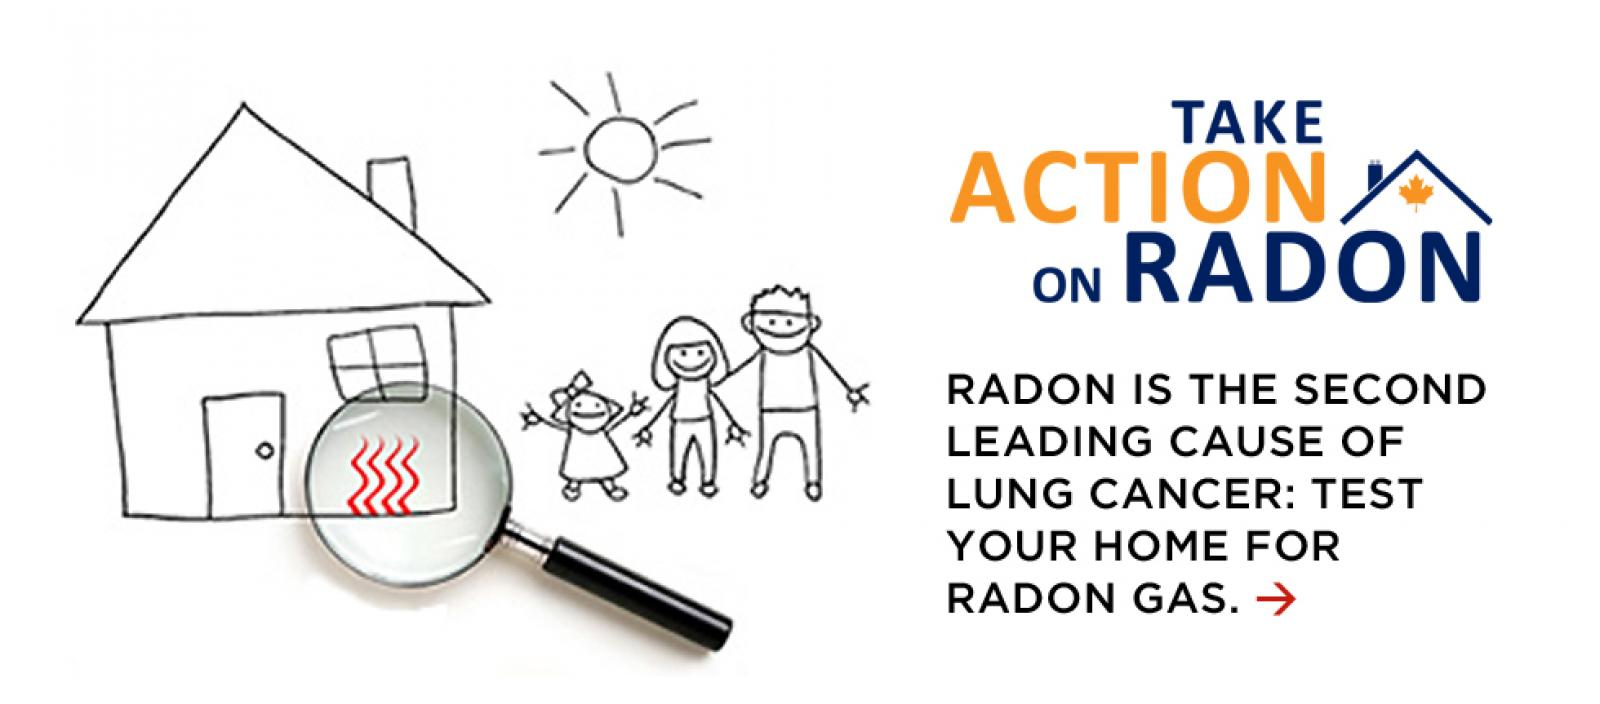 Take Action on Radon.